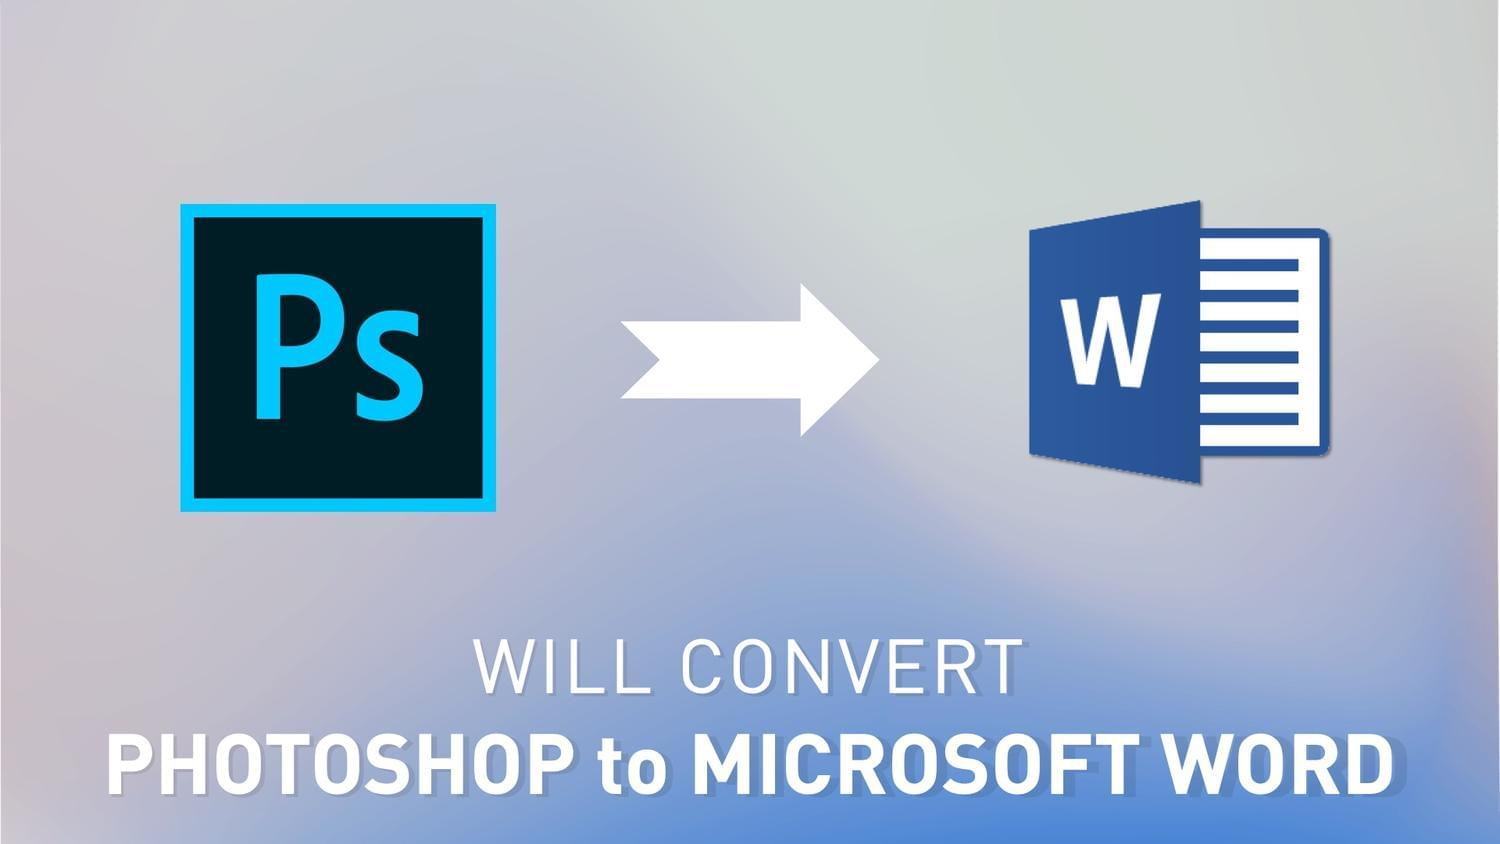 Convert Photoshop To Microsoft Word by arvaone - 115073